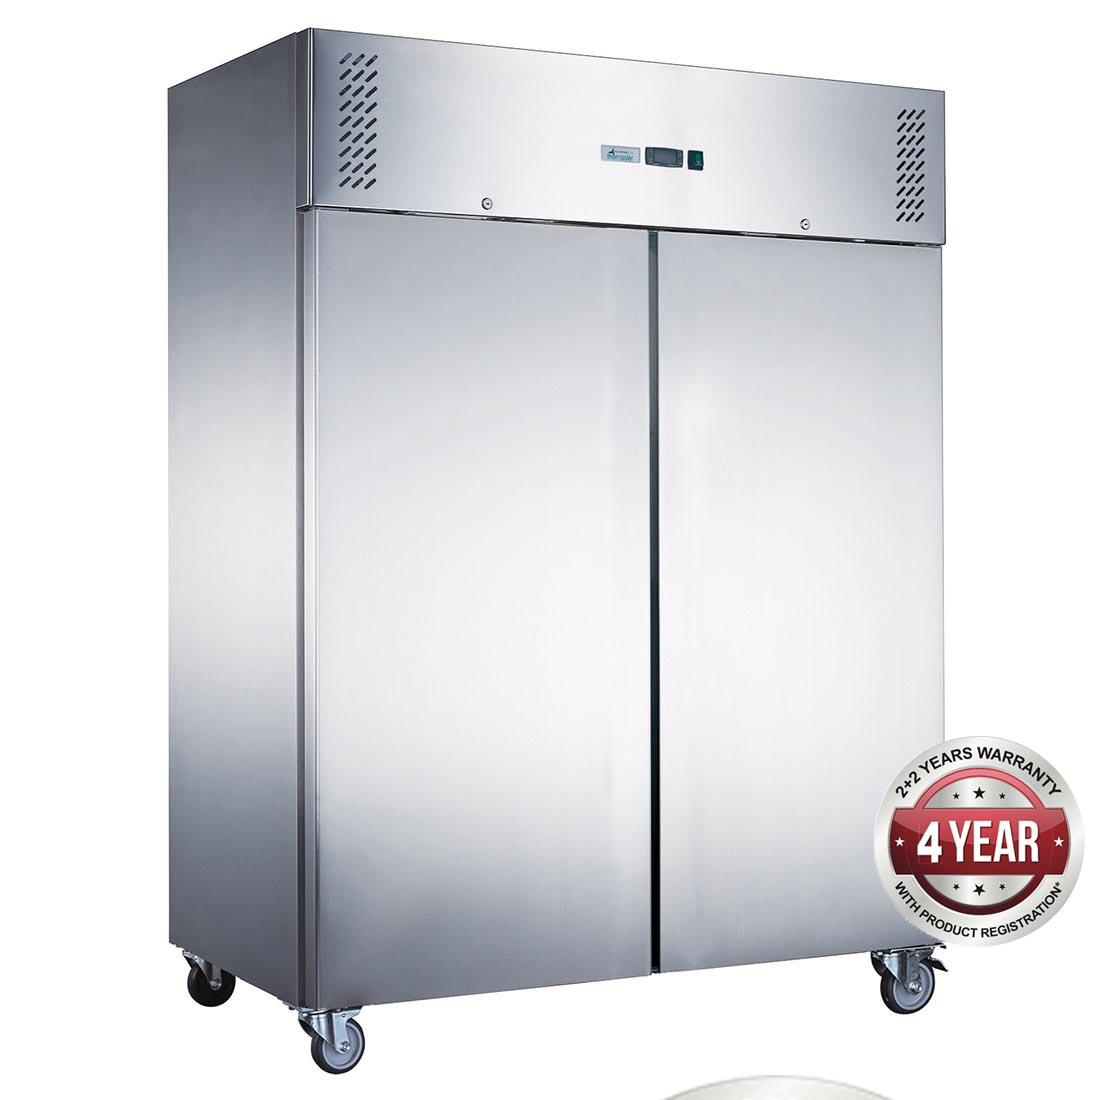 FED-X S/S Double Door Upright Freezer - XURF1200SFV